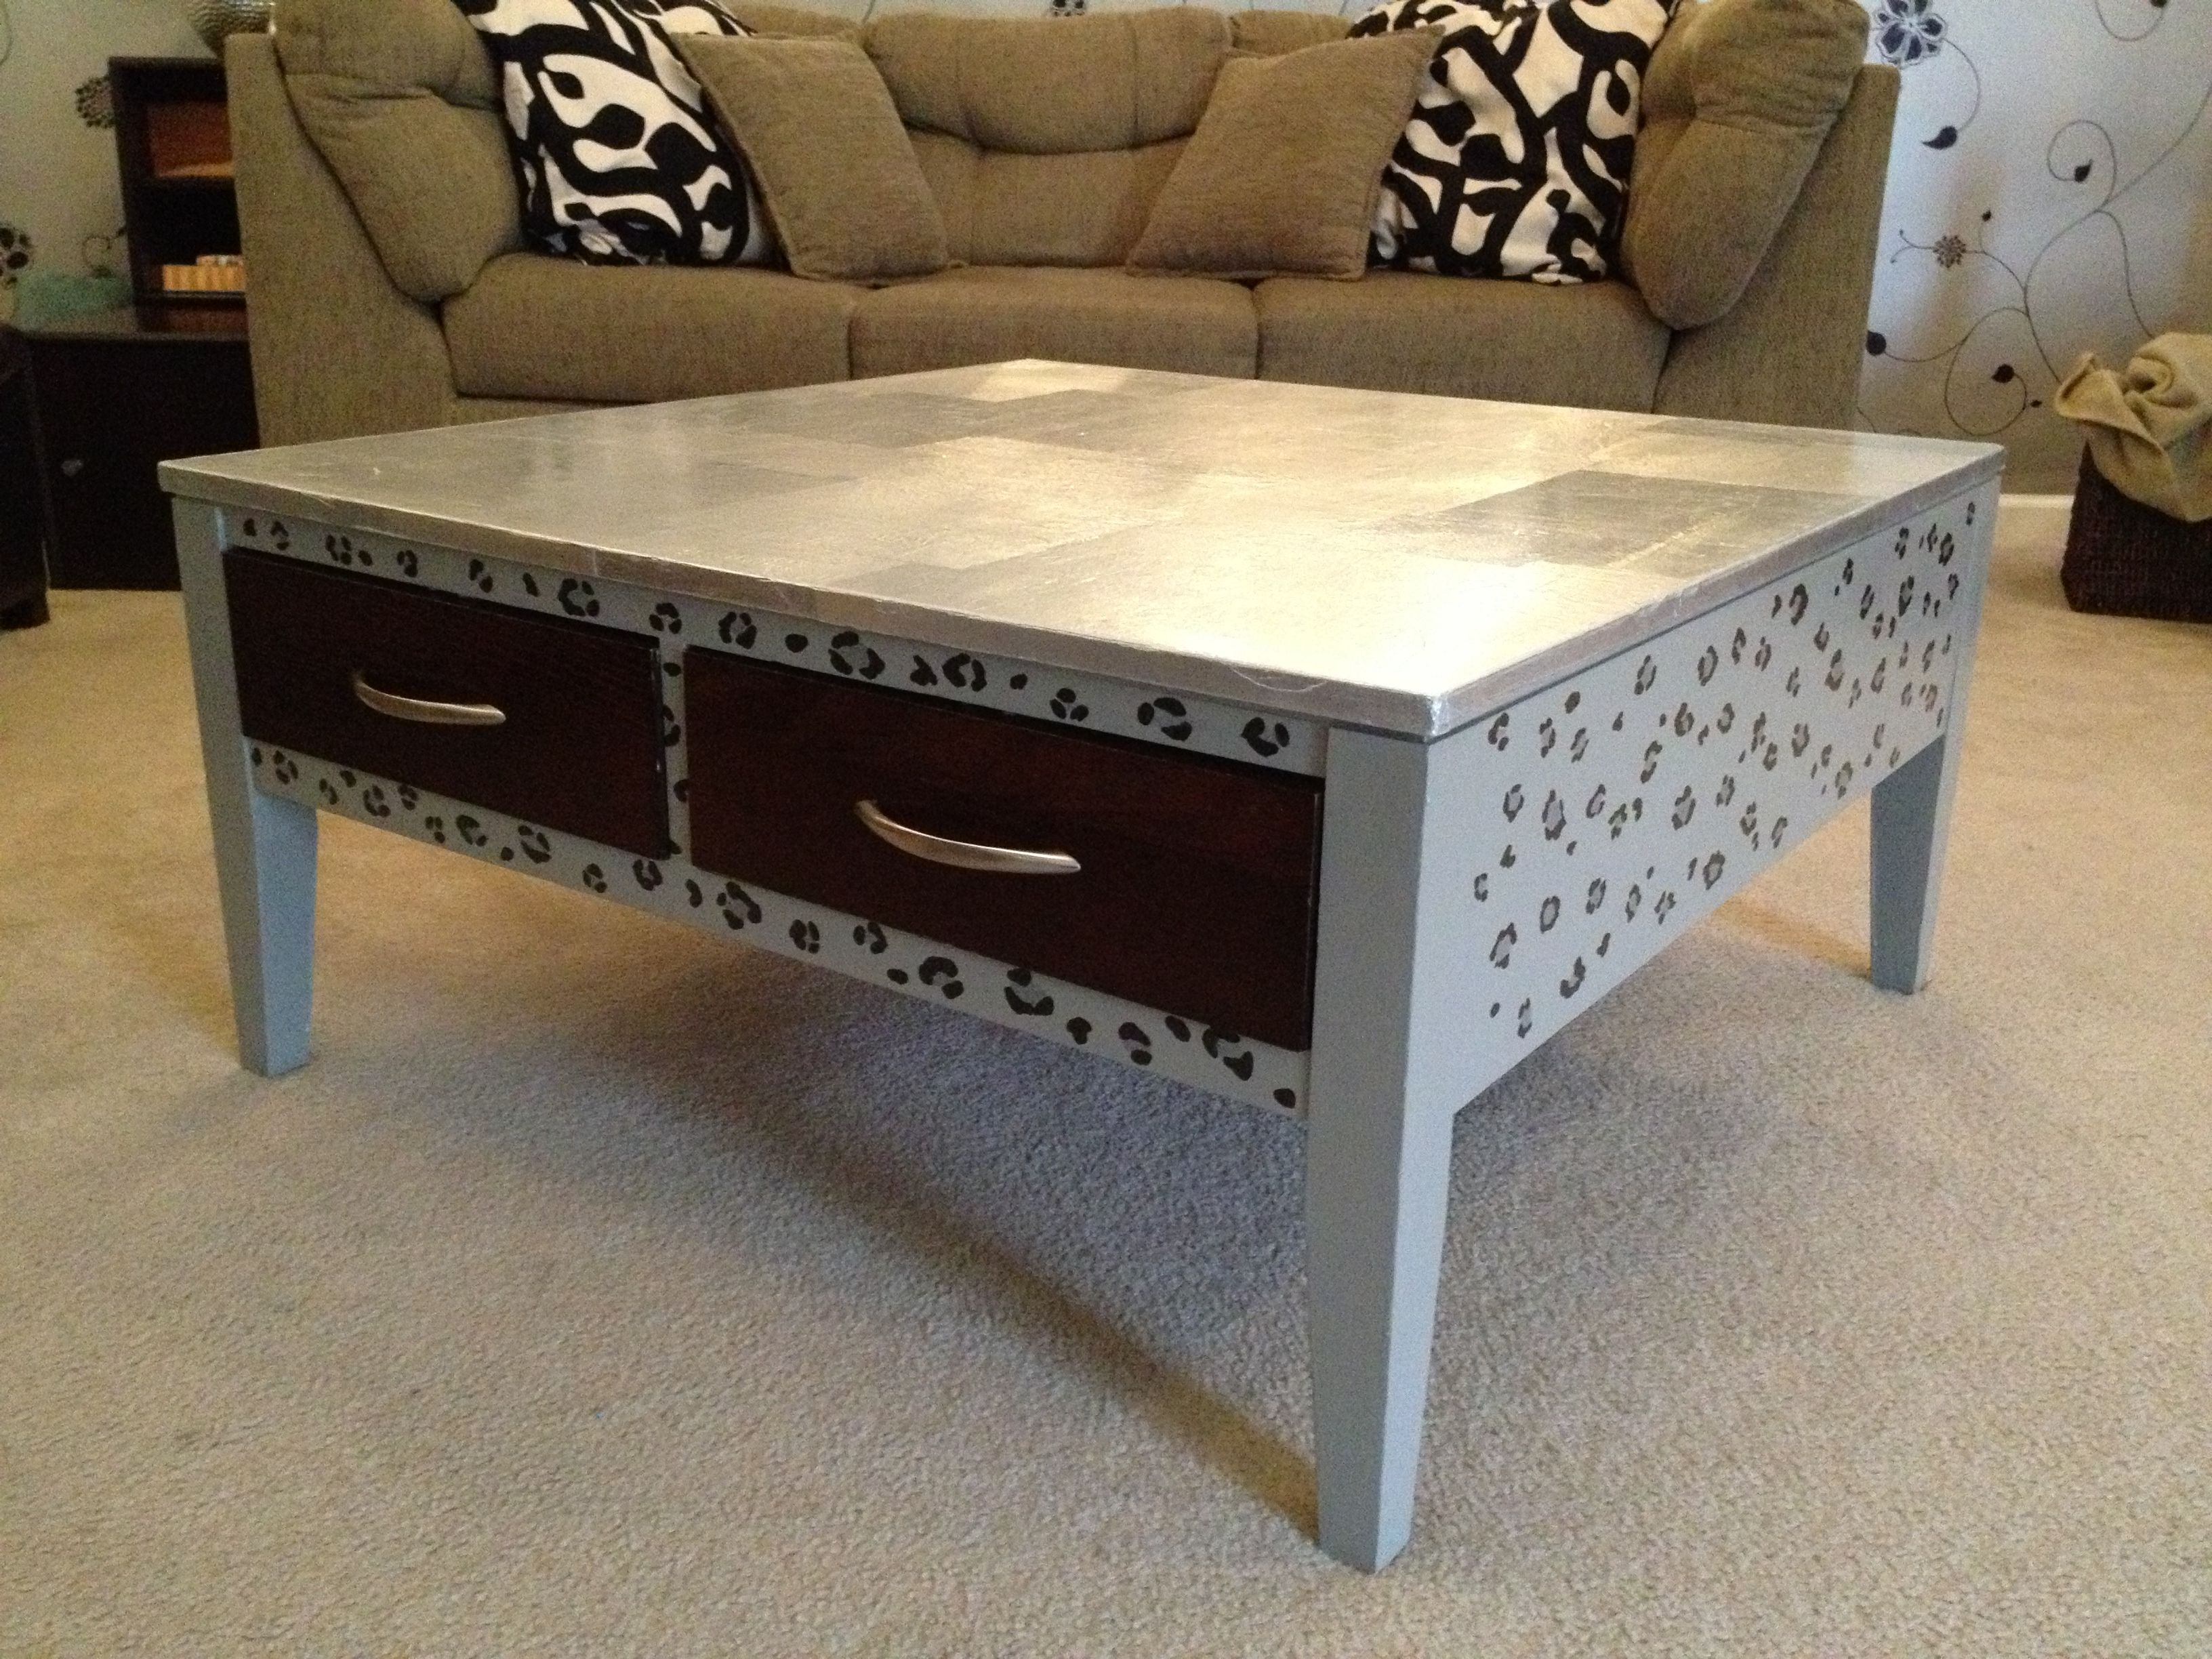 Diy aluminum foil coffee table top paint furniture upcycled diy aluminum foil coffee table top geotapseo Gallery